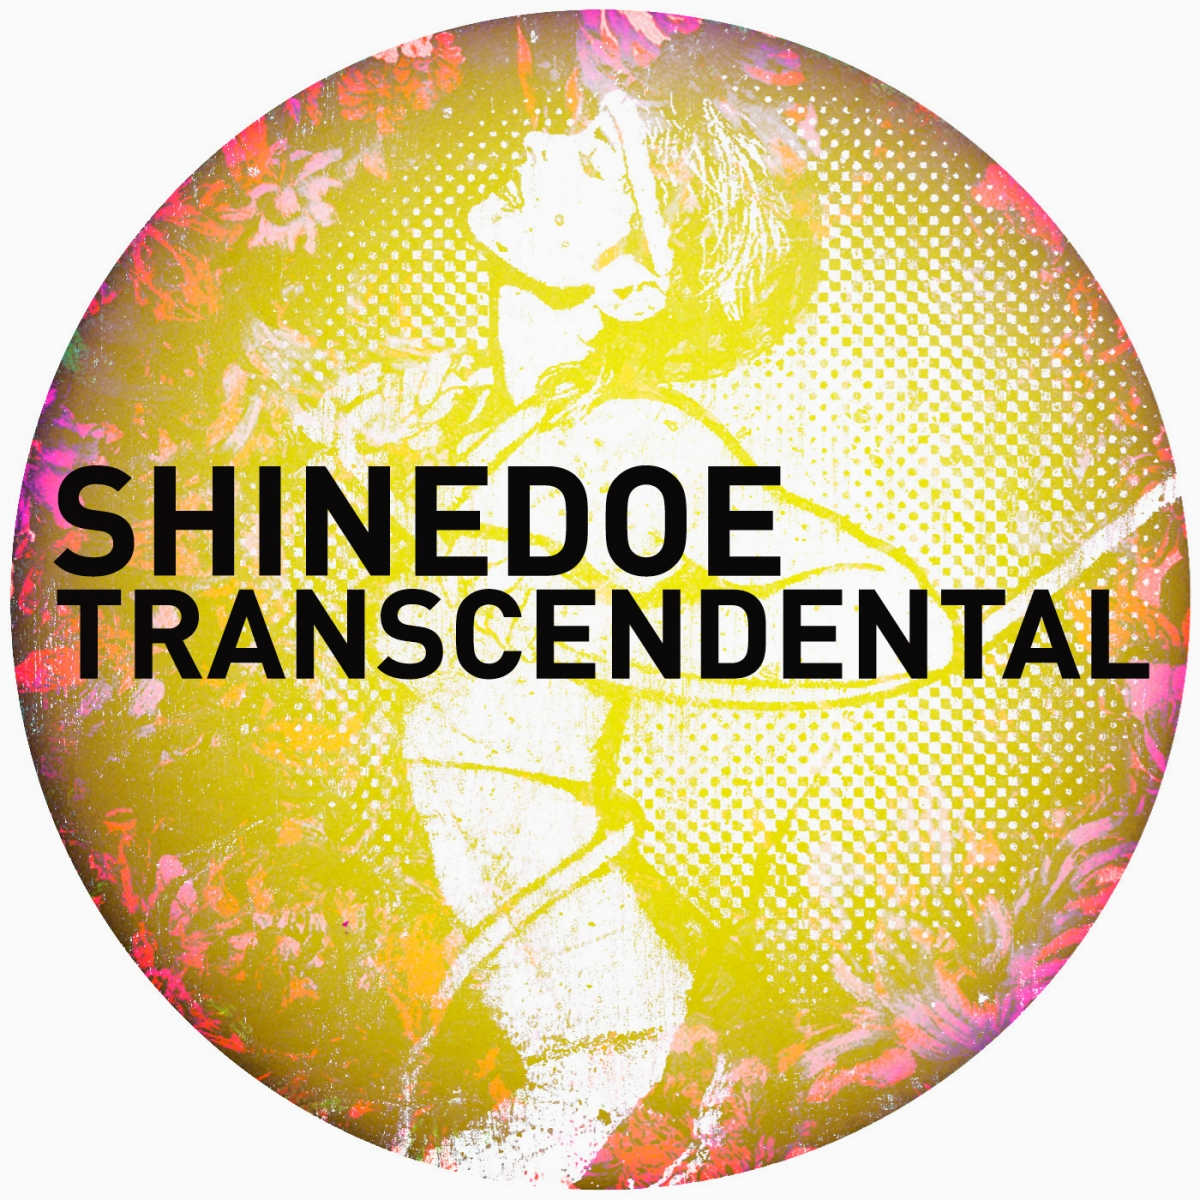 Shinedoe new release on Get Physical